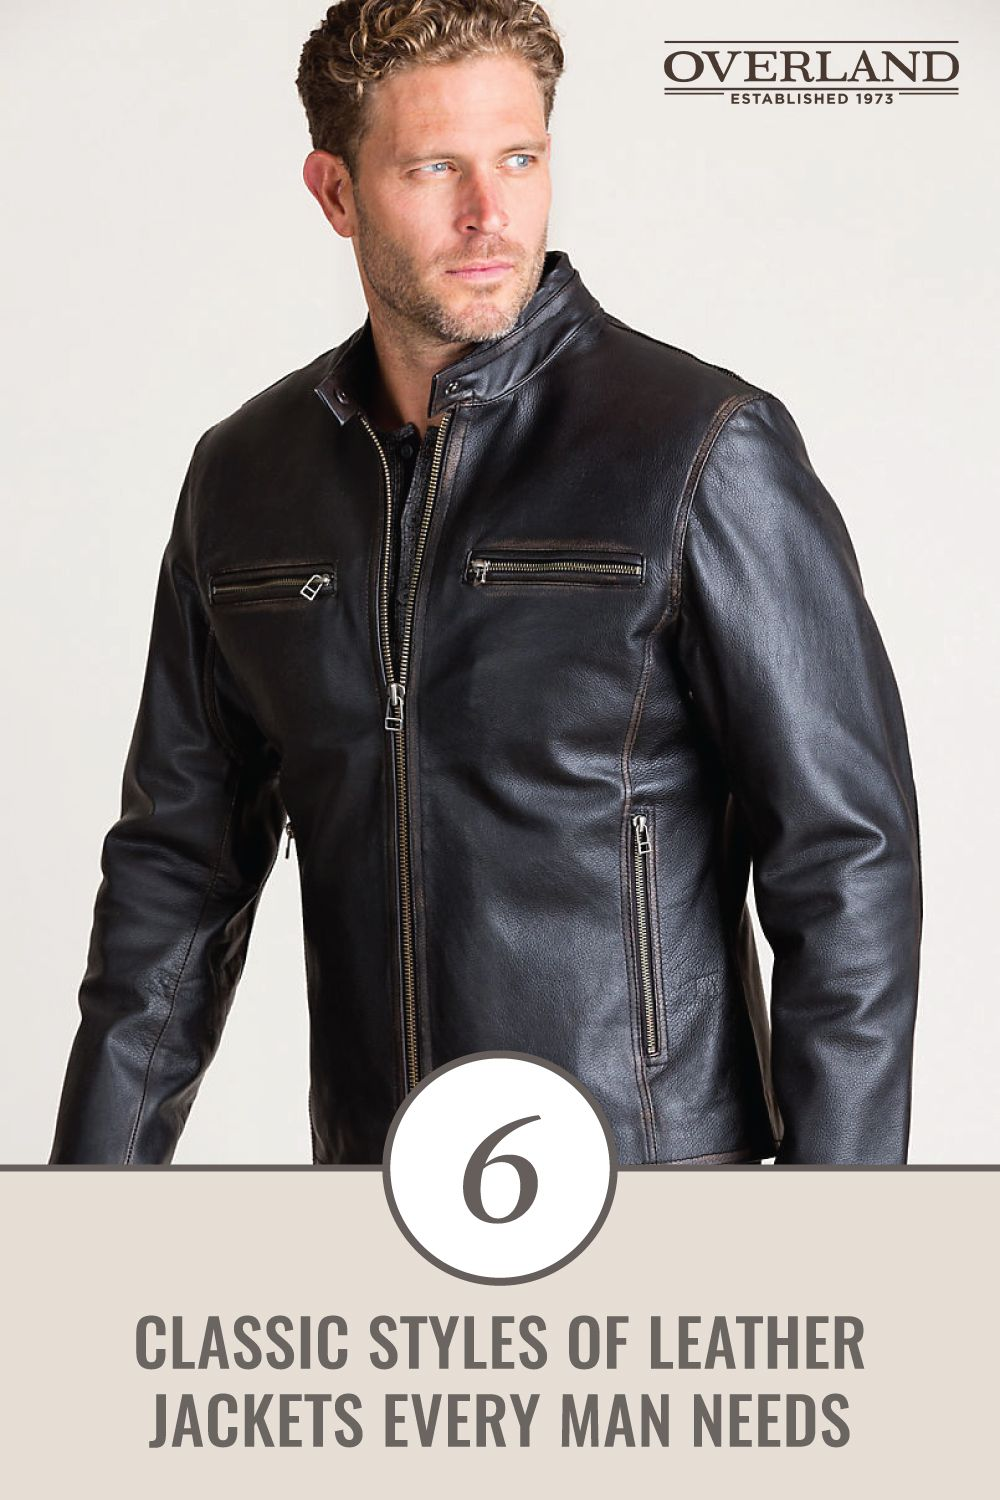 What Men S Leather Jacket To Buy 6 Classic Styles Leather Jacket Leather Jacket Men Leather Jacket Men Style [ 1500 x 1000 Pixel ]